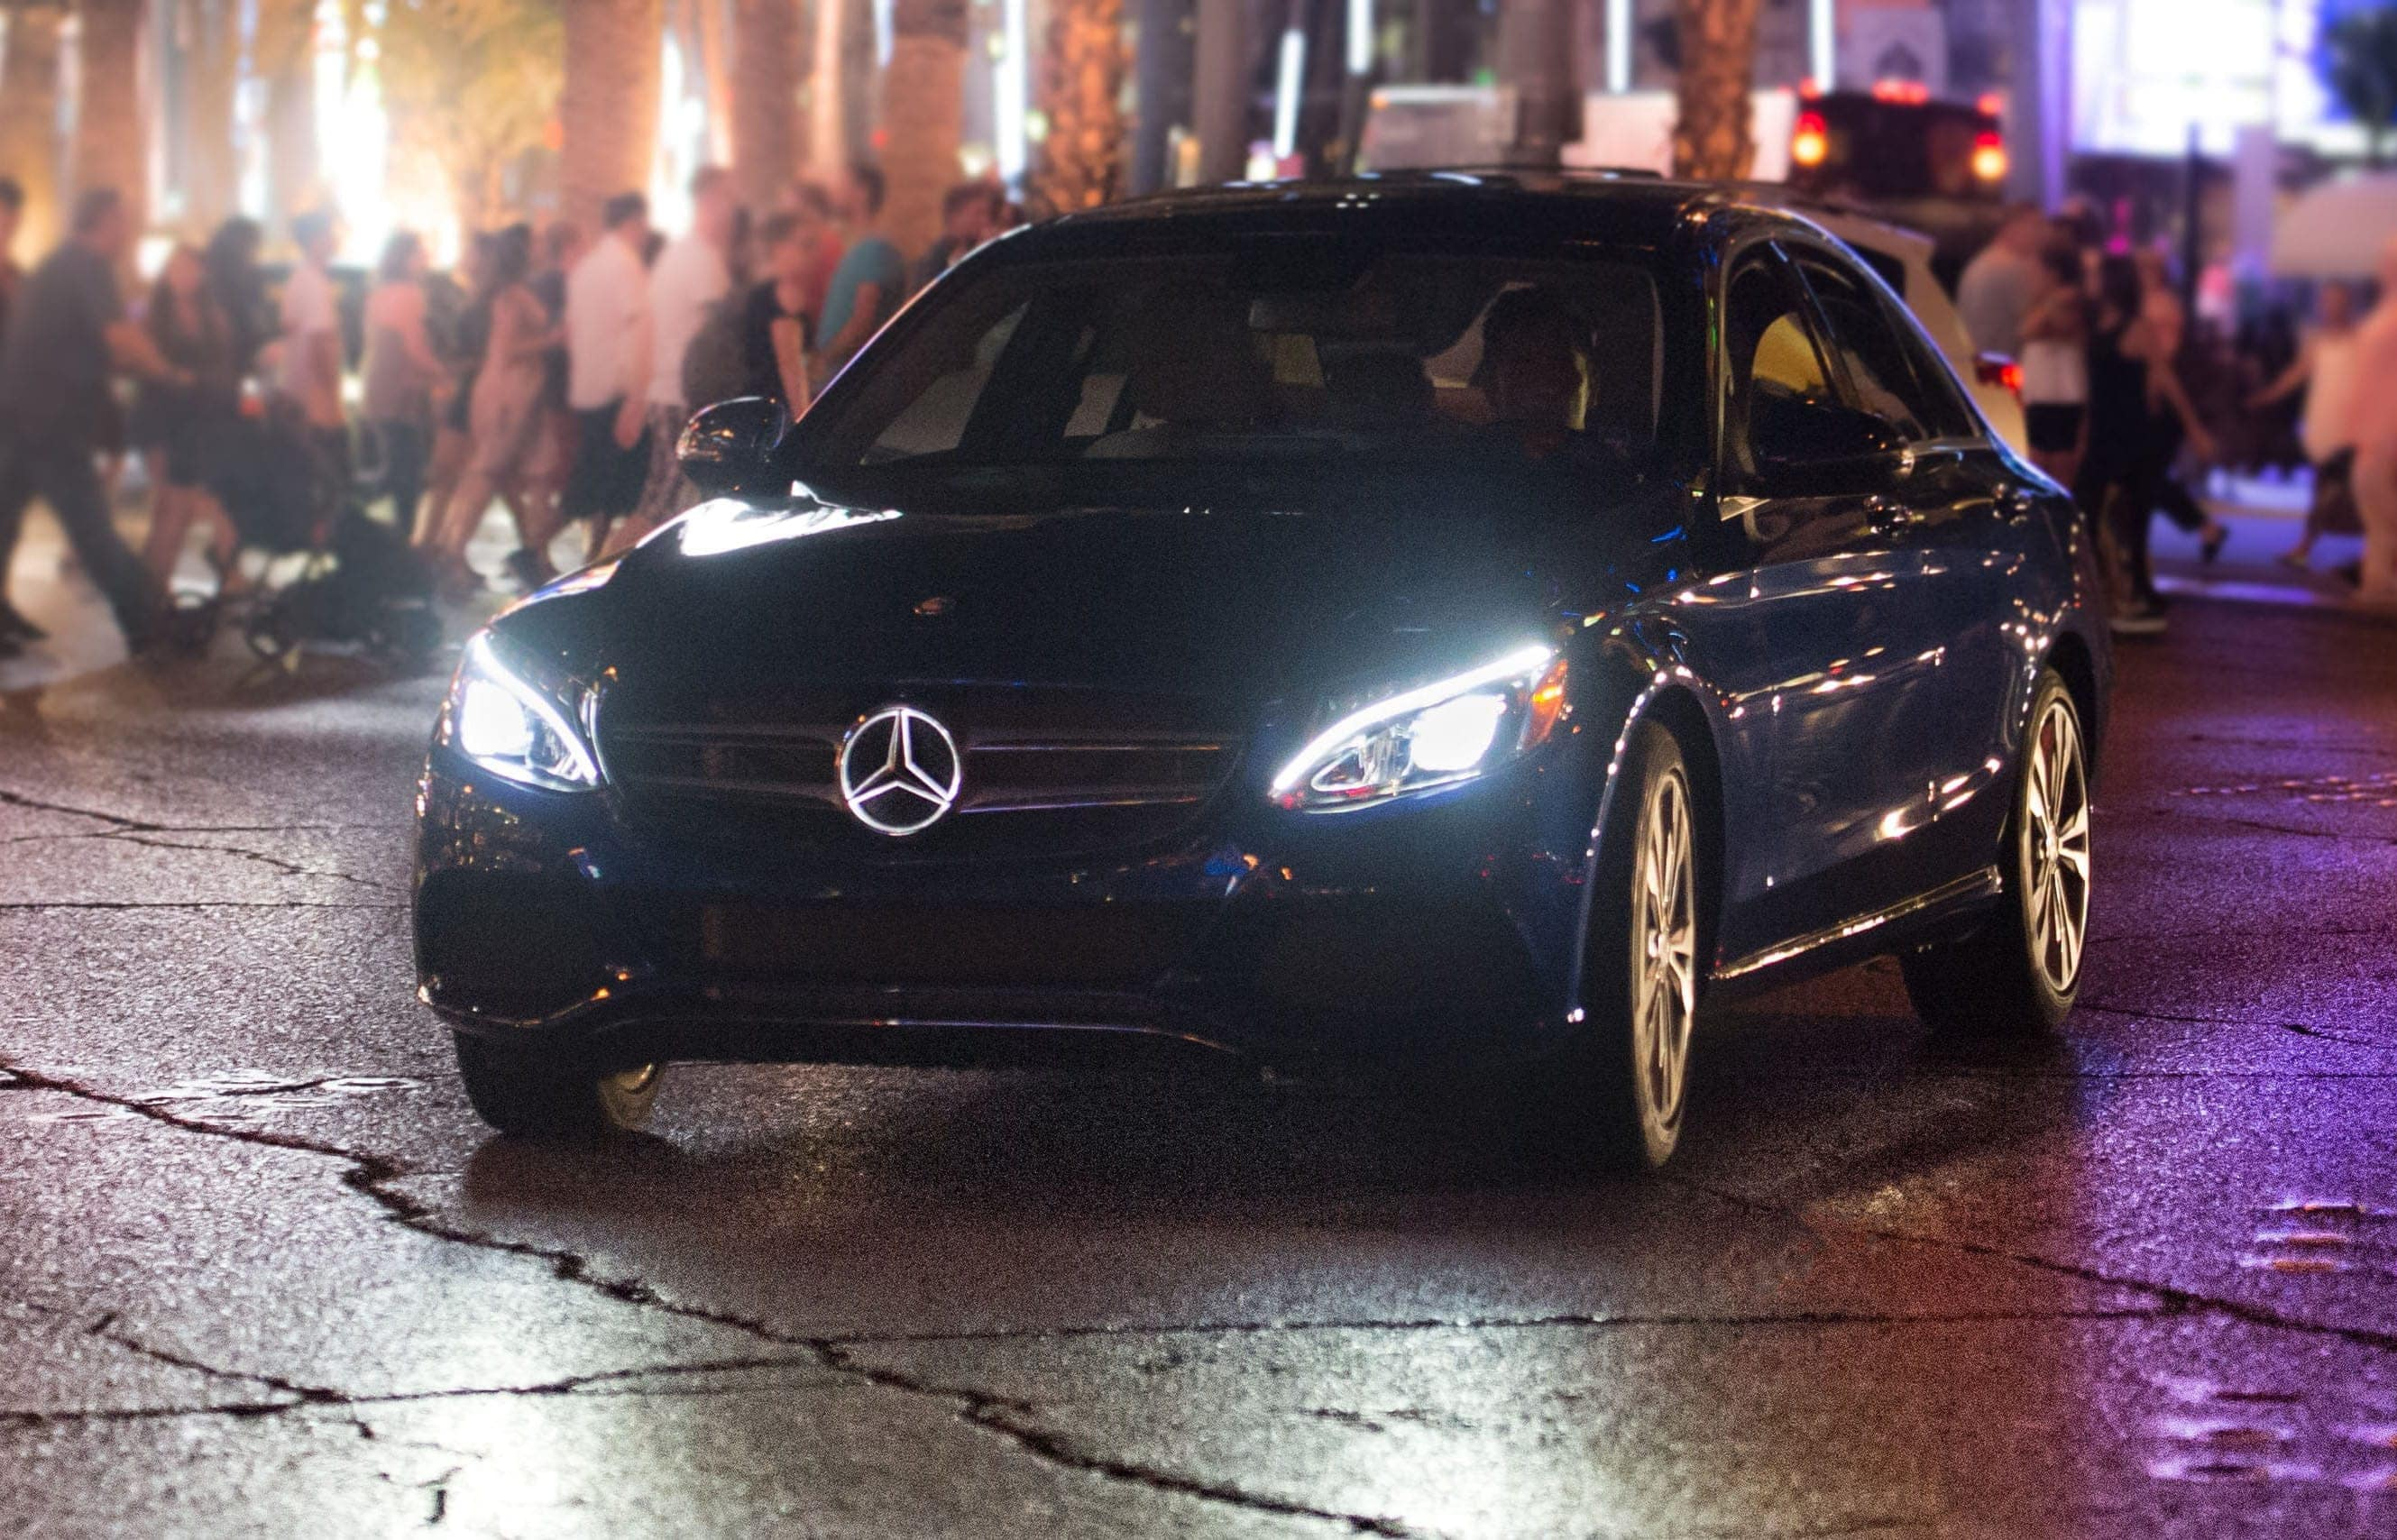 Mercedes-Benz headlights at night